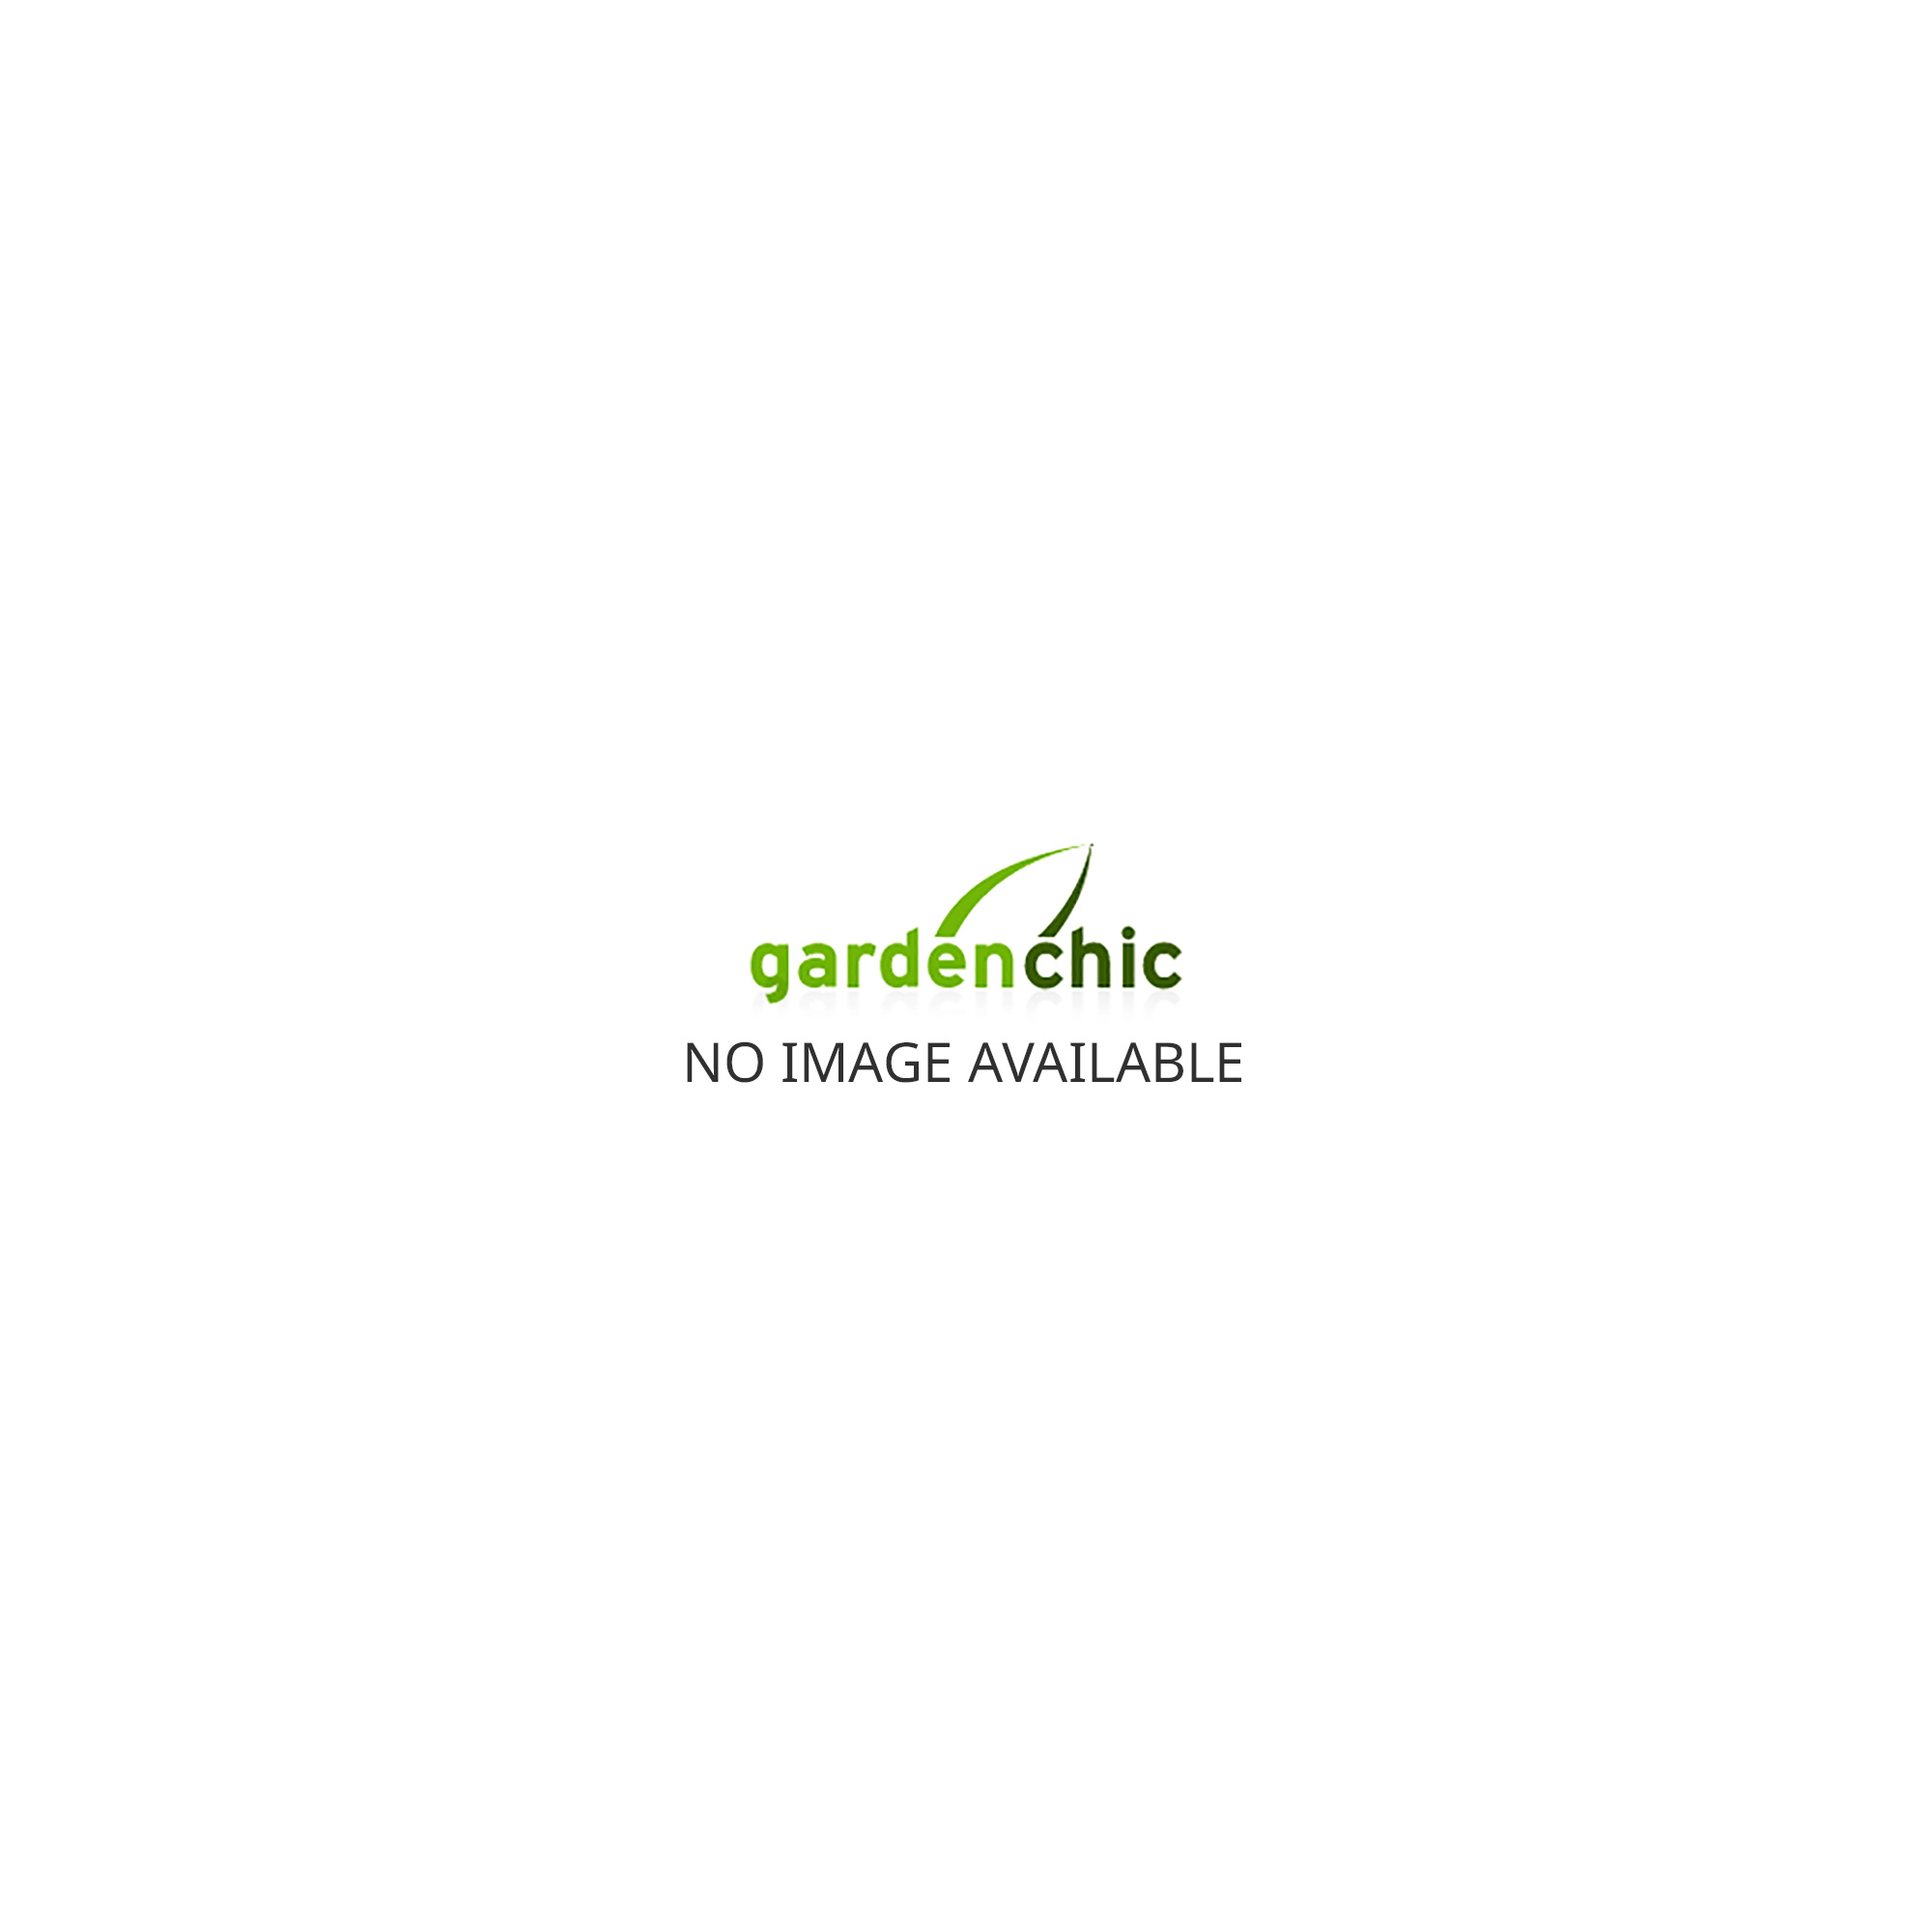 Vitavia Apollo 7500 Greenhouse - Silver FREE Staging until APRIL 2018